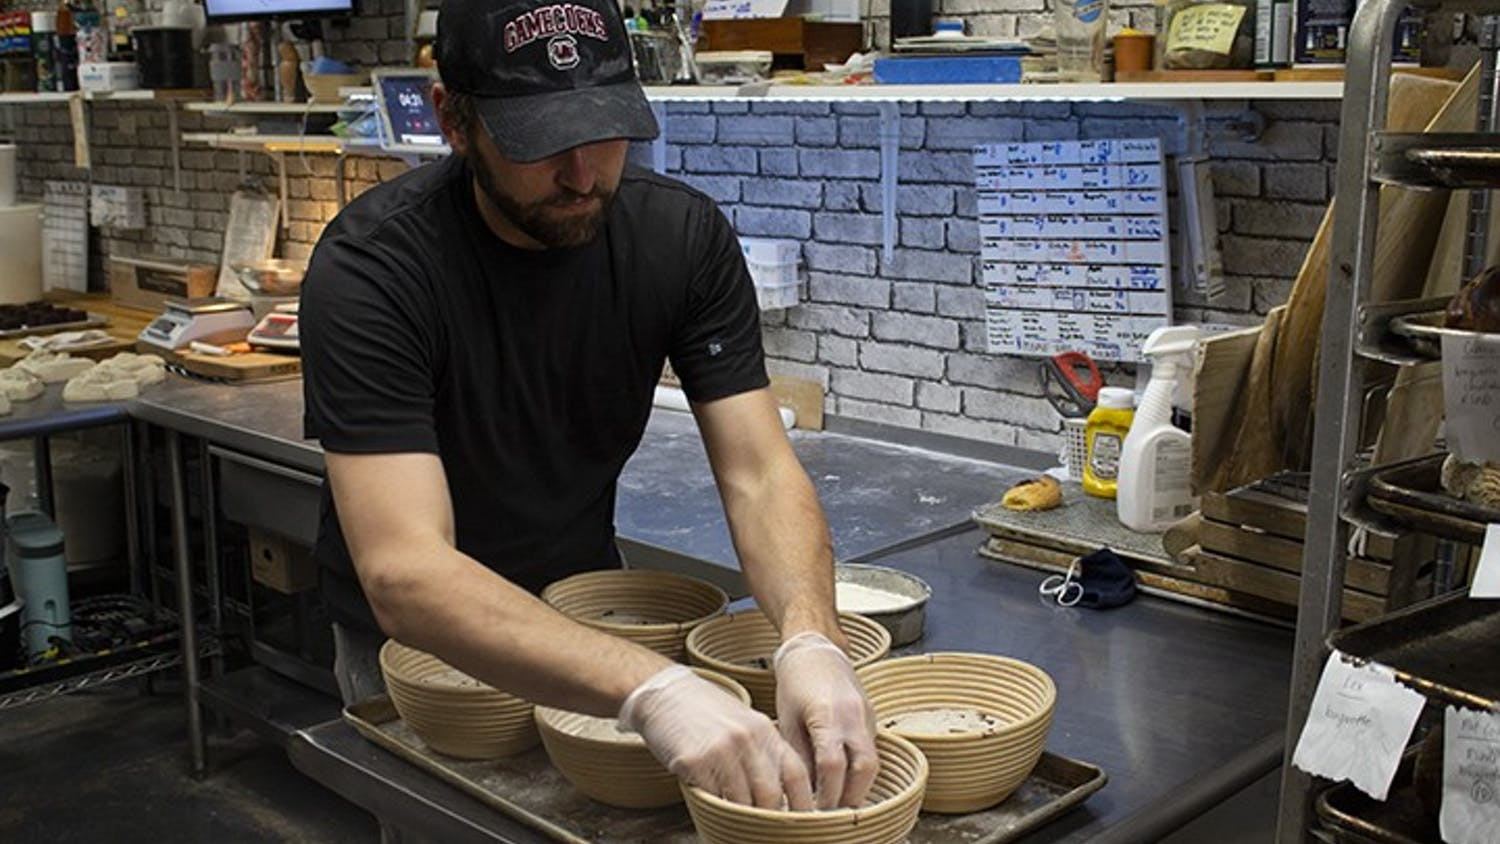 Owner of Crust Bakehouse Zackery Gates works in the kitchen to prep inventory.